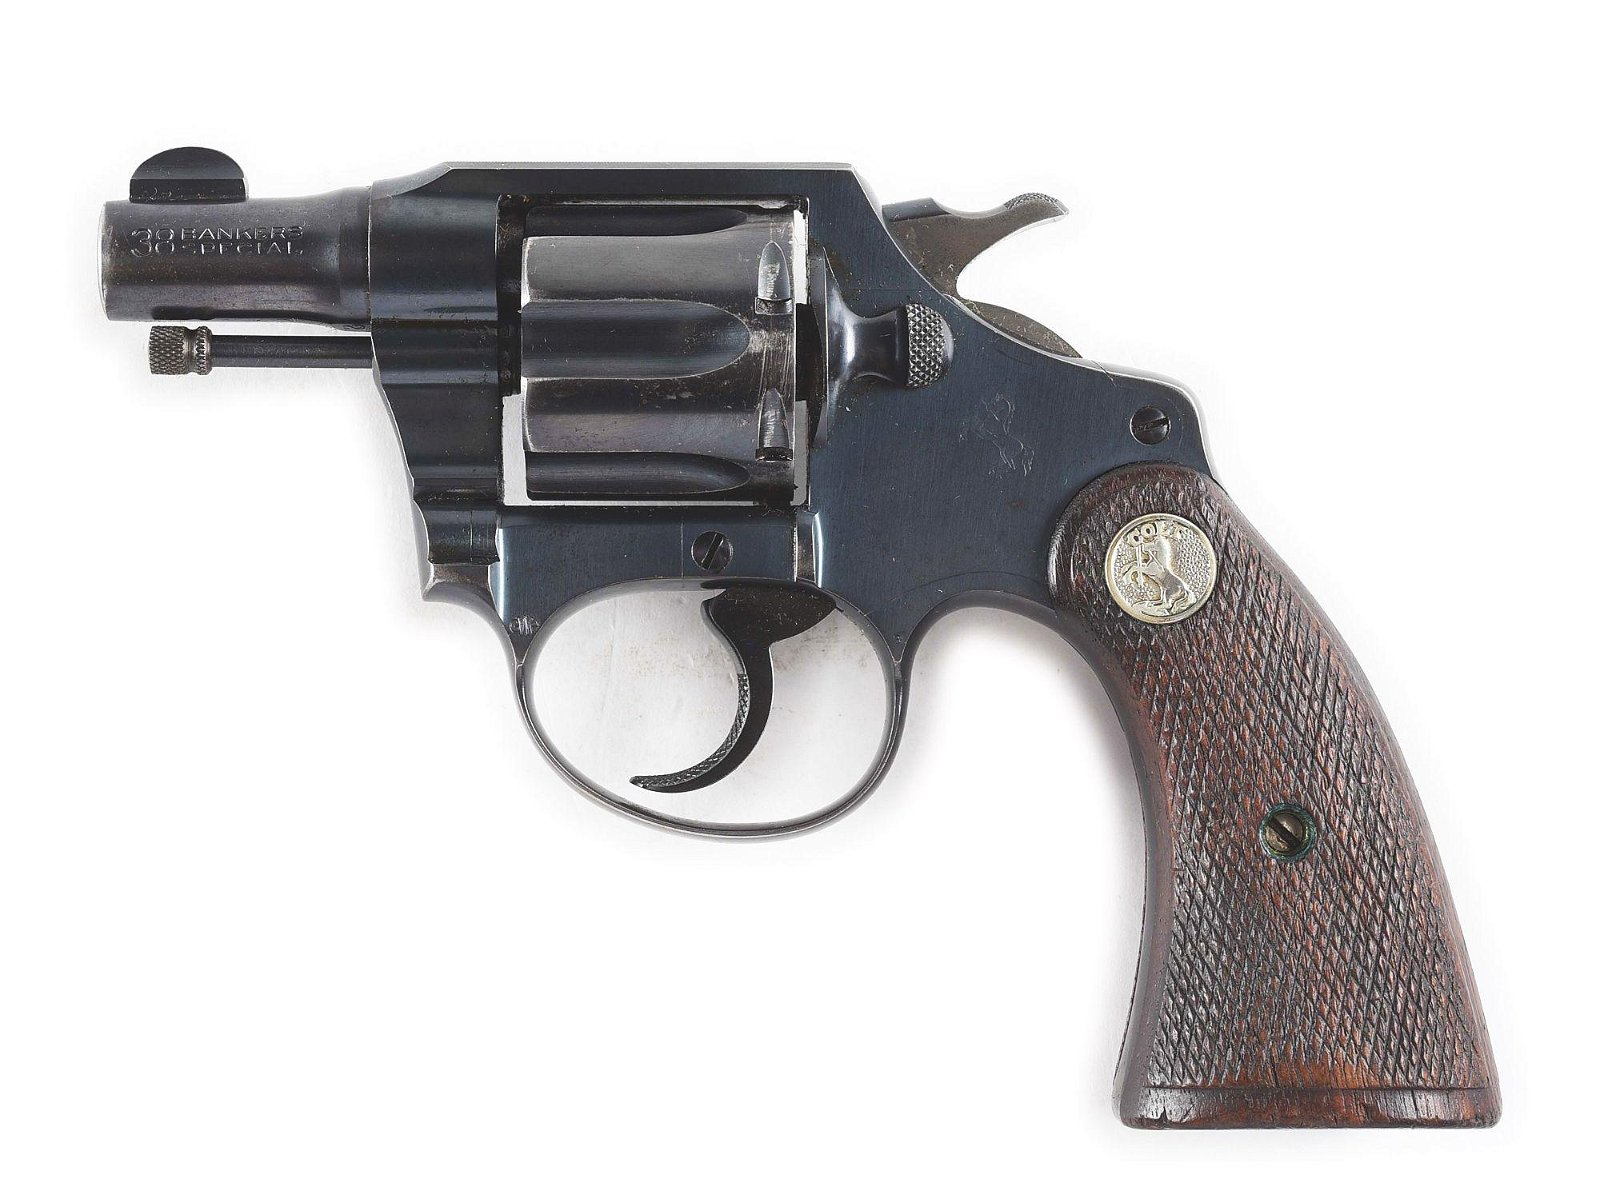 (C) RAILWAY MAIL SERVICE COLT BANKERS SPECIAL REVOLVER.